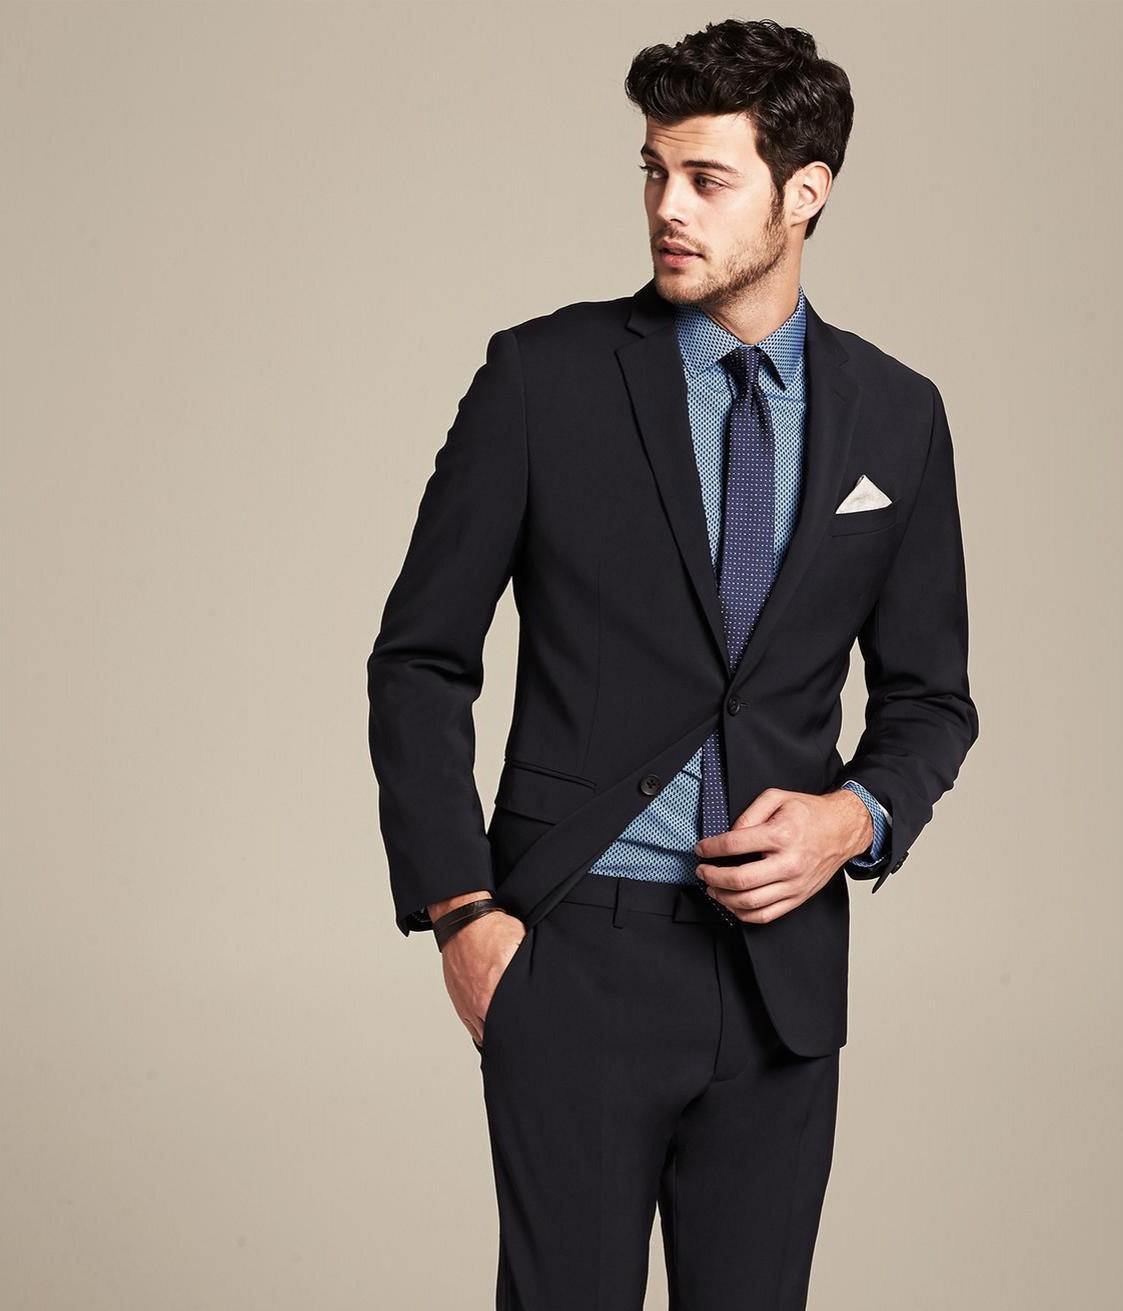 Dress For Success, Style or Pure Sultriness With Dresses For Men At Glamour Boutique. Visit Our Website Today and Discover Our Variety Of Styles.